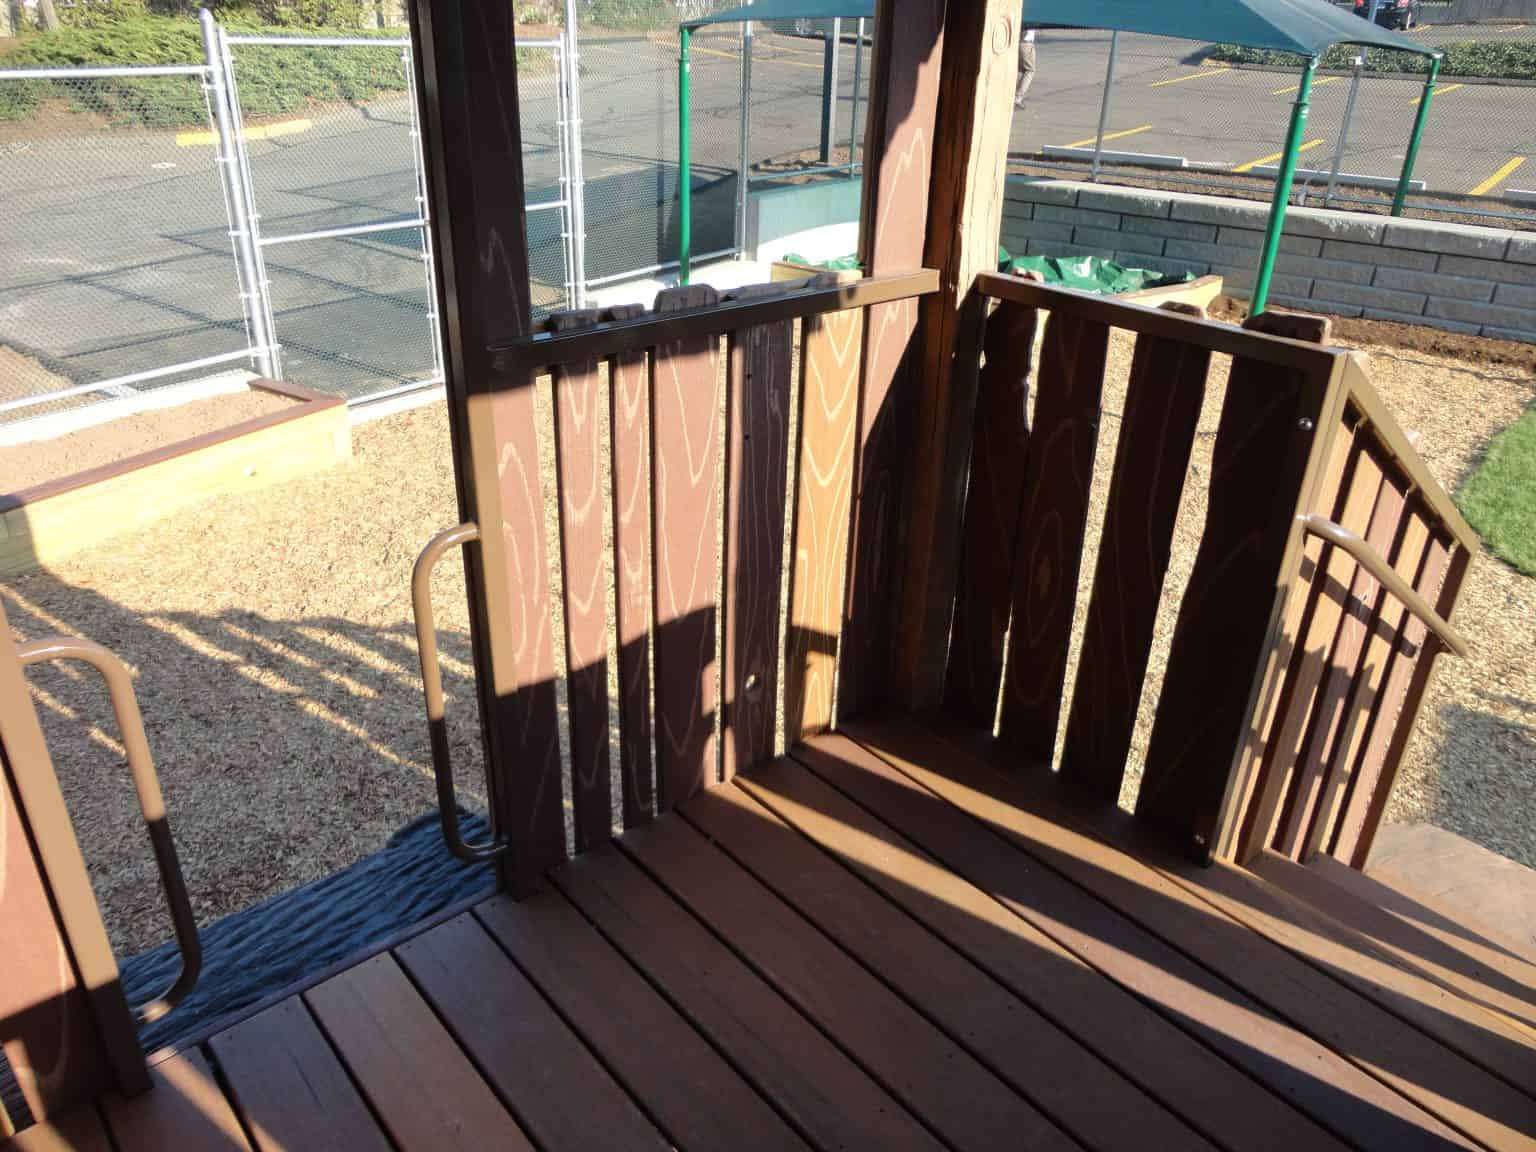 phyllis-bodel-daycare-playground-new-haven-ct_17507001033_o-1536x1152